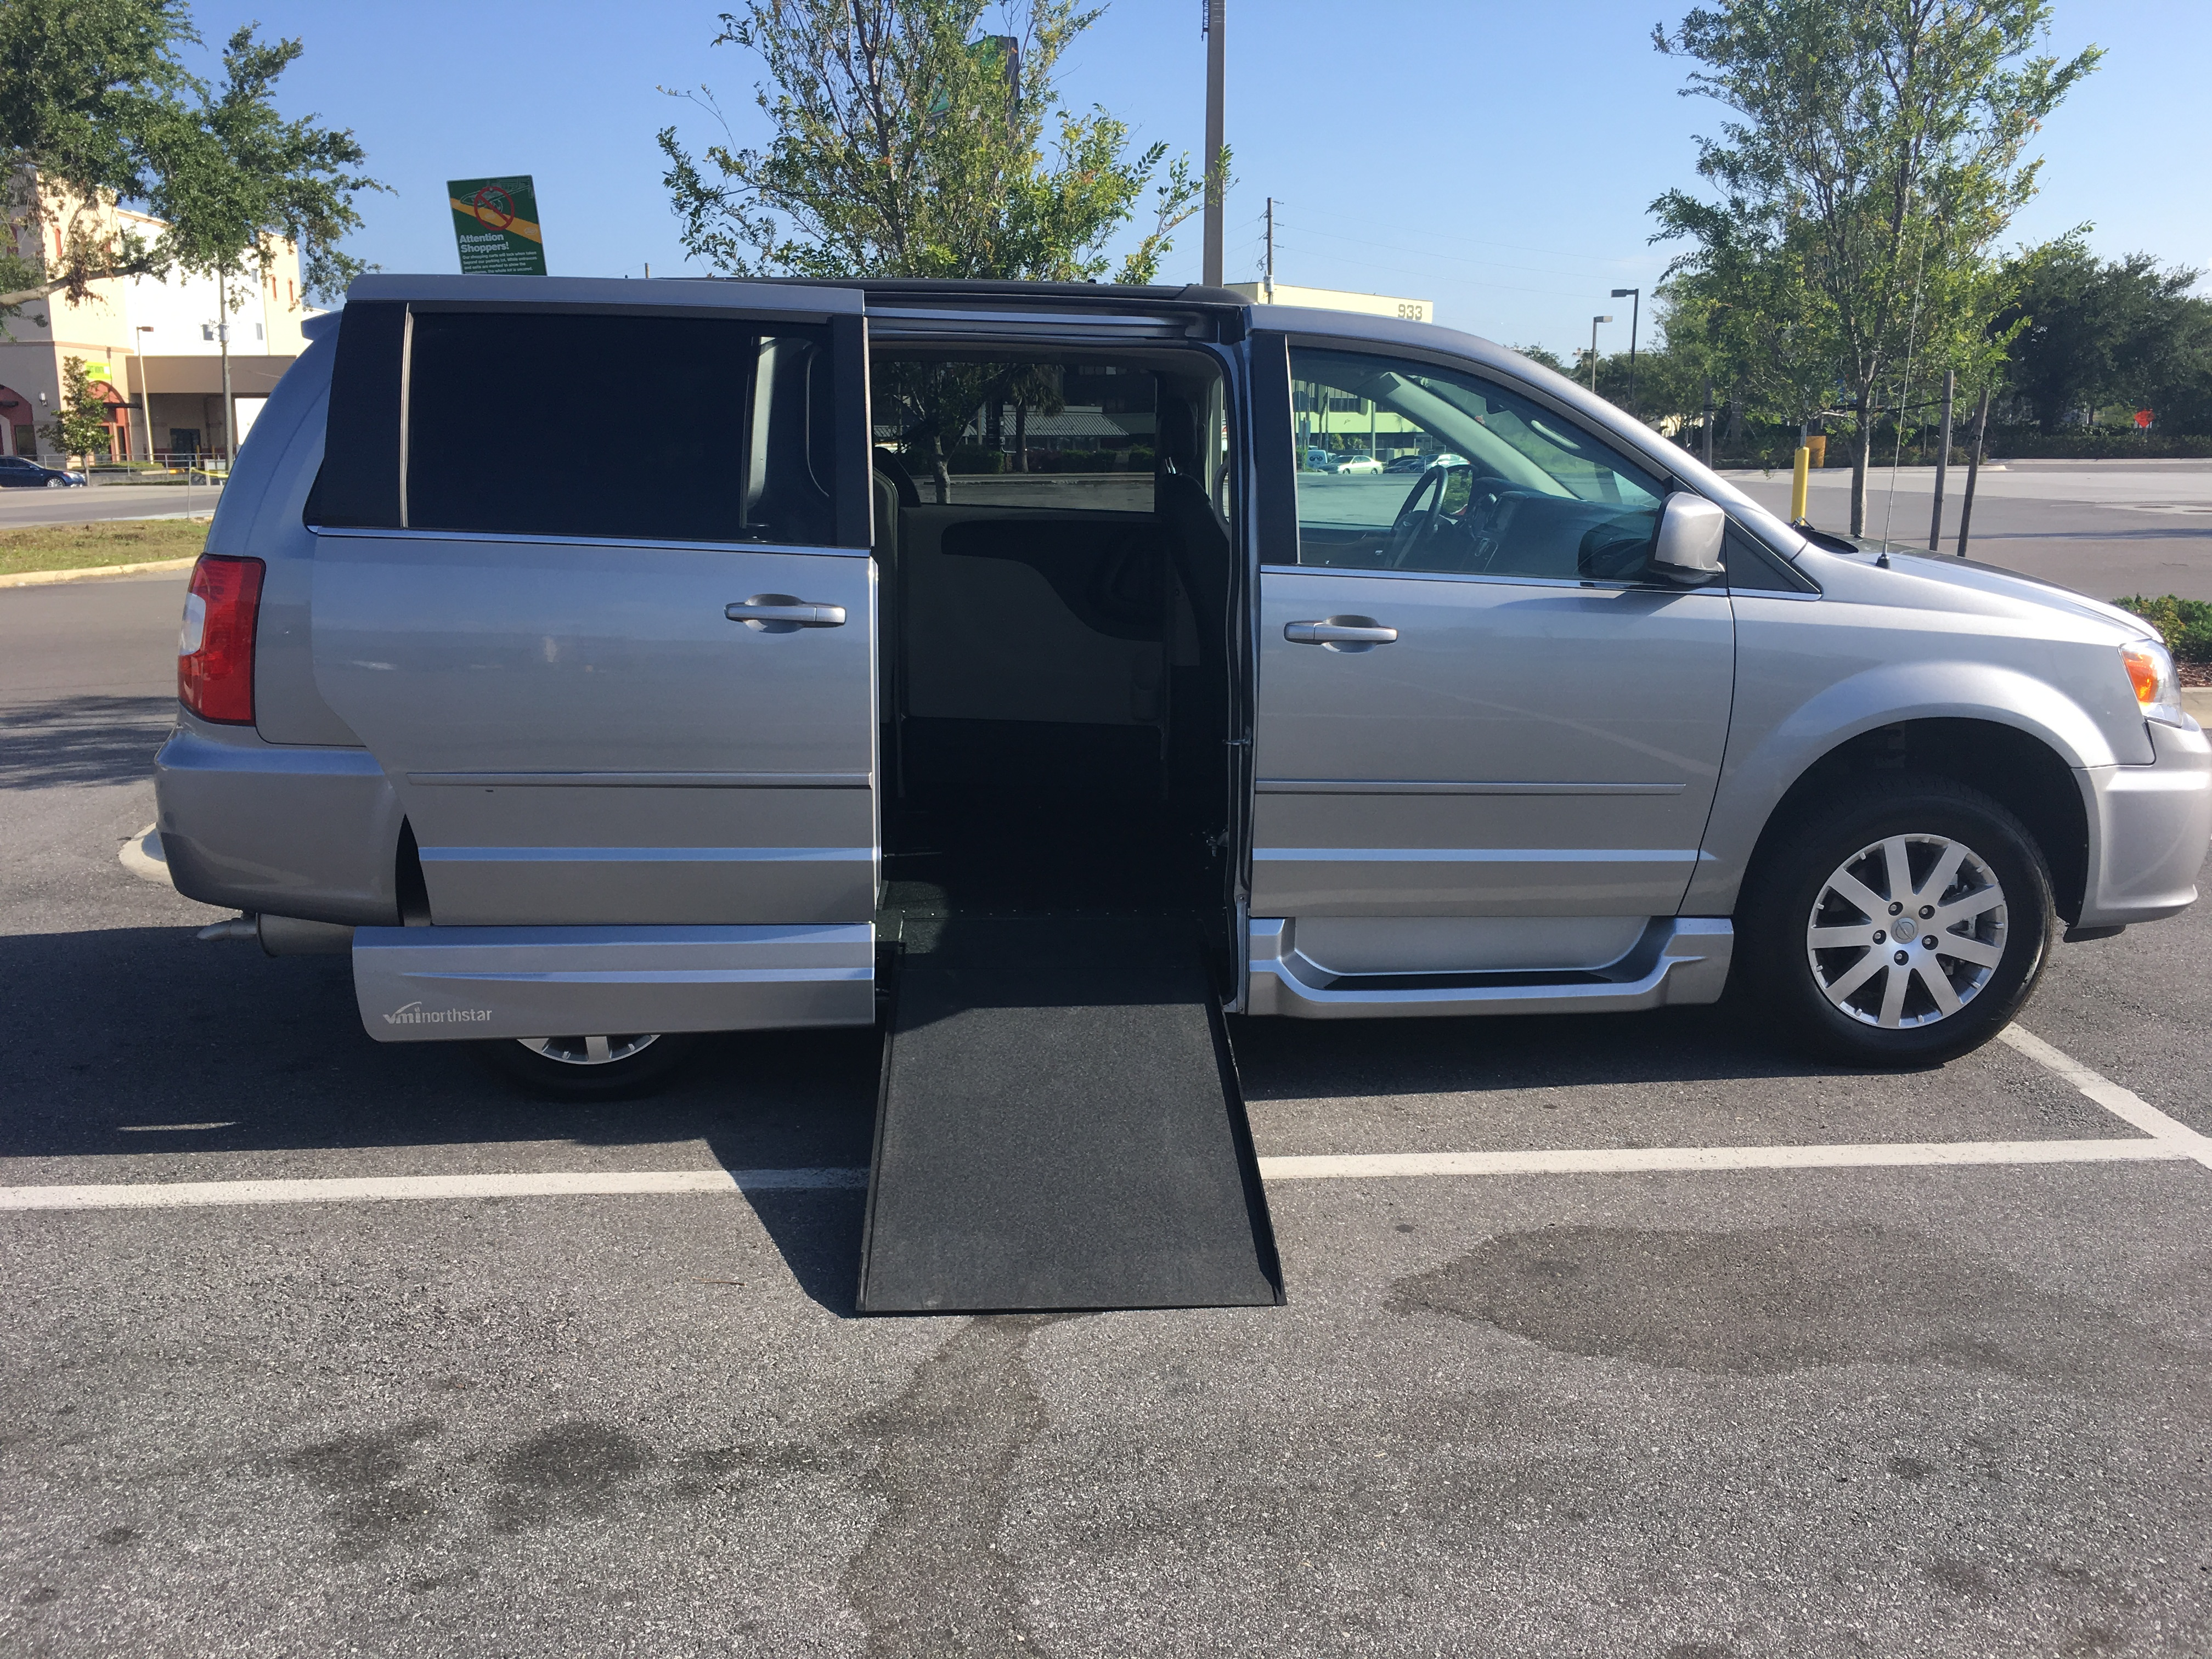 platinum of town limited used chrysler and grand country review vehicle hill simon dodge caravan expert